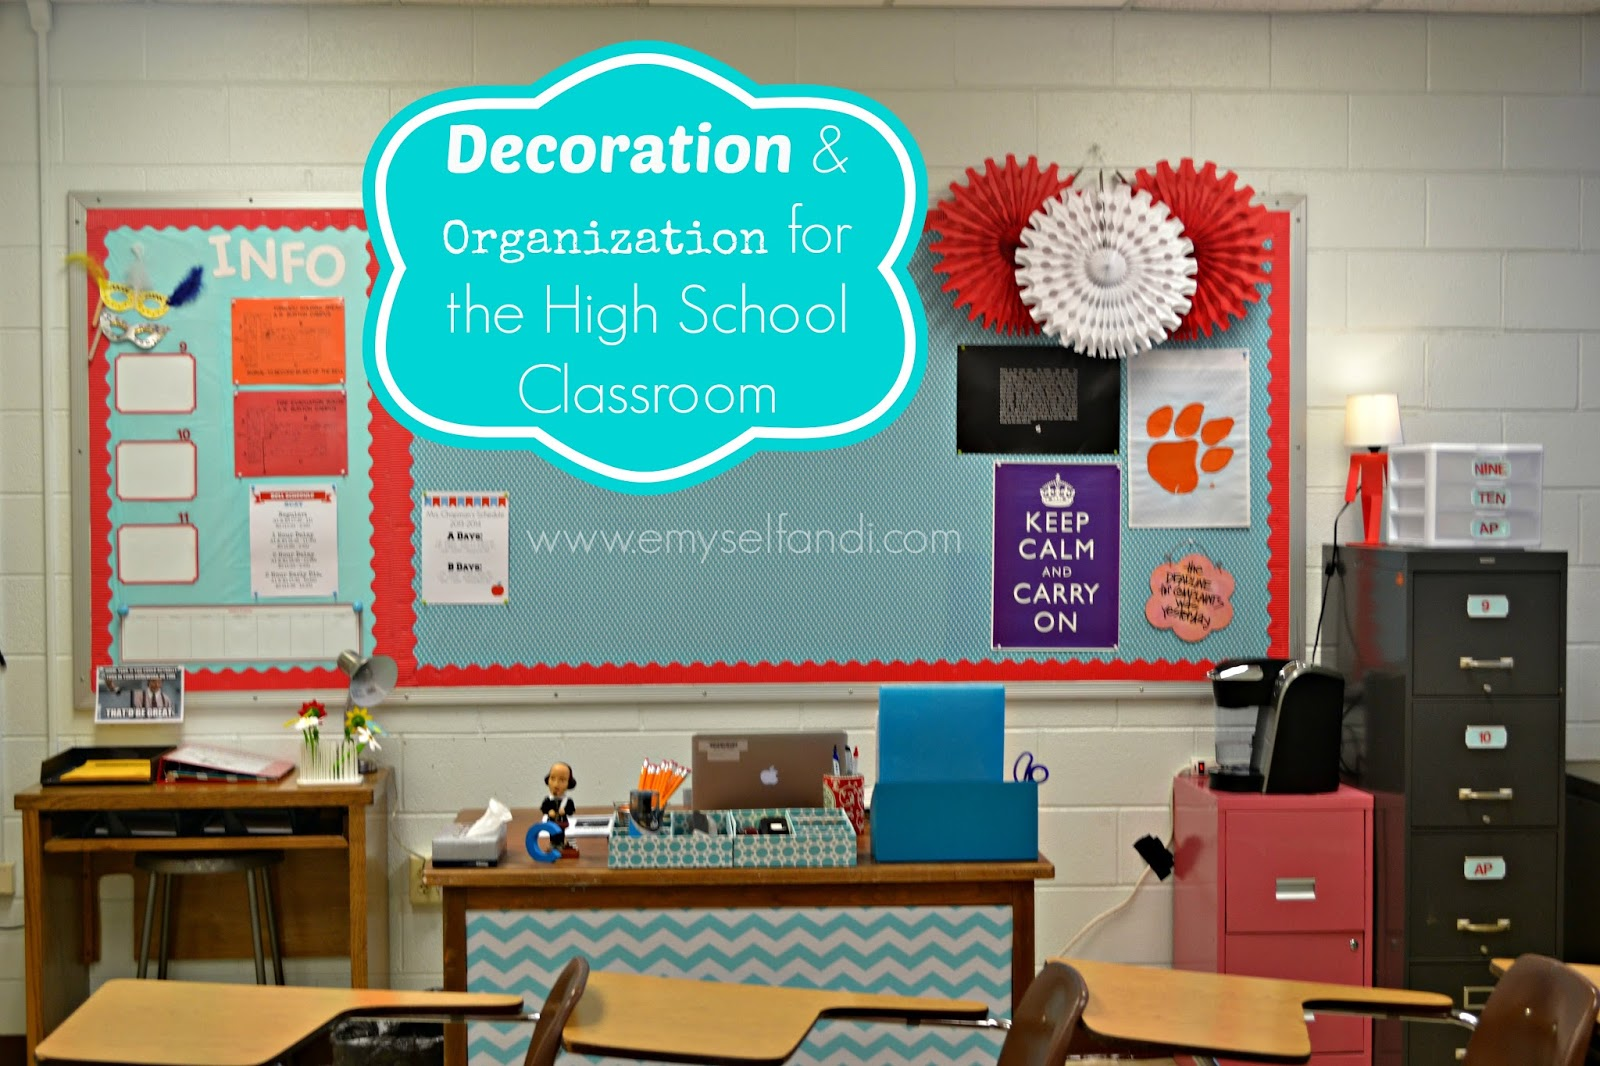 Classroom Decoration Hangings ~ E myself and i teaching tuesday decoration